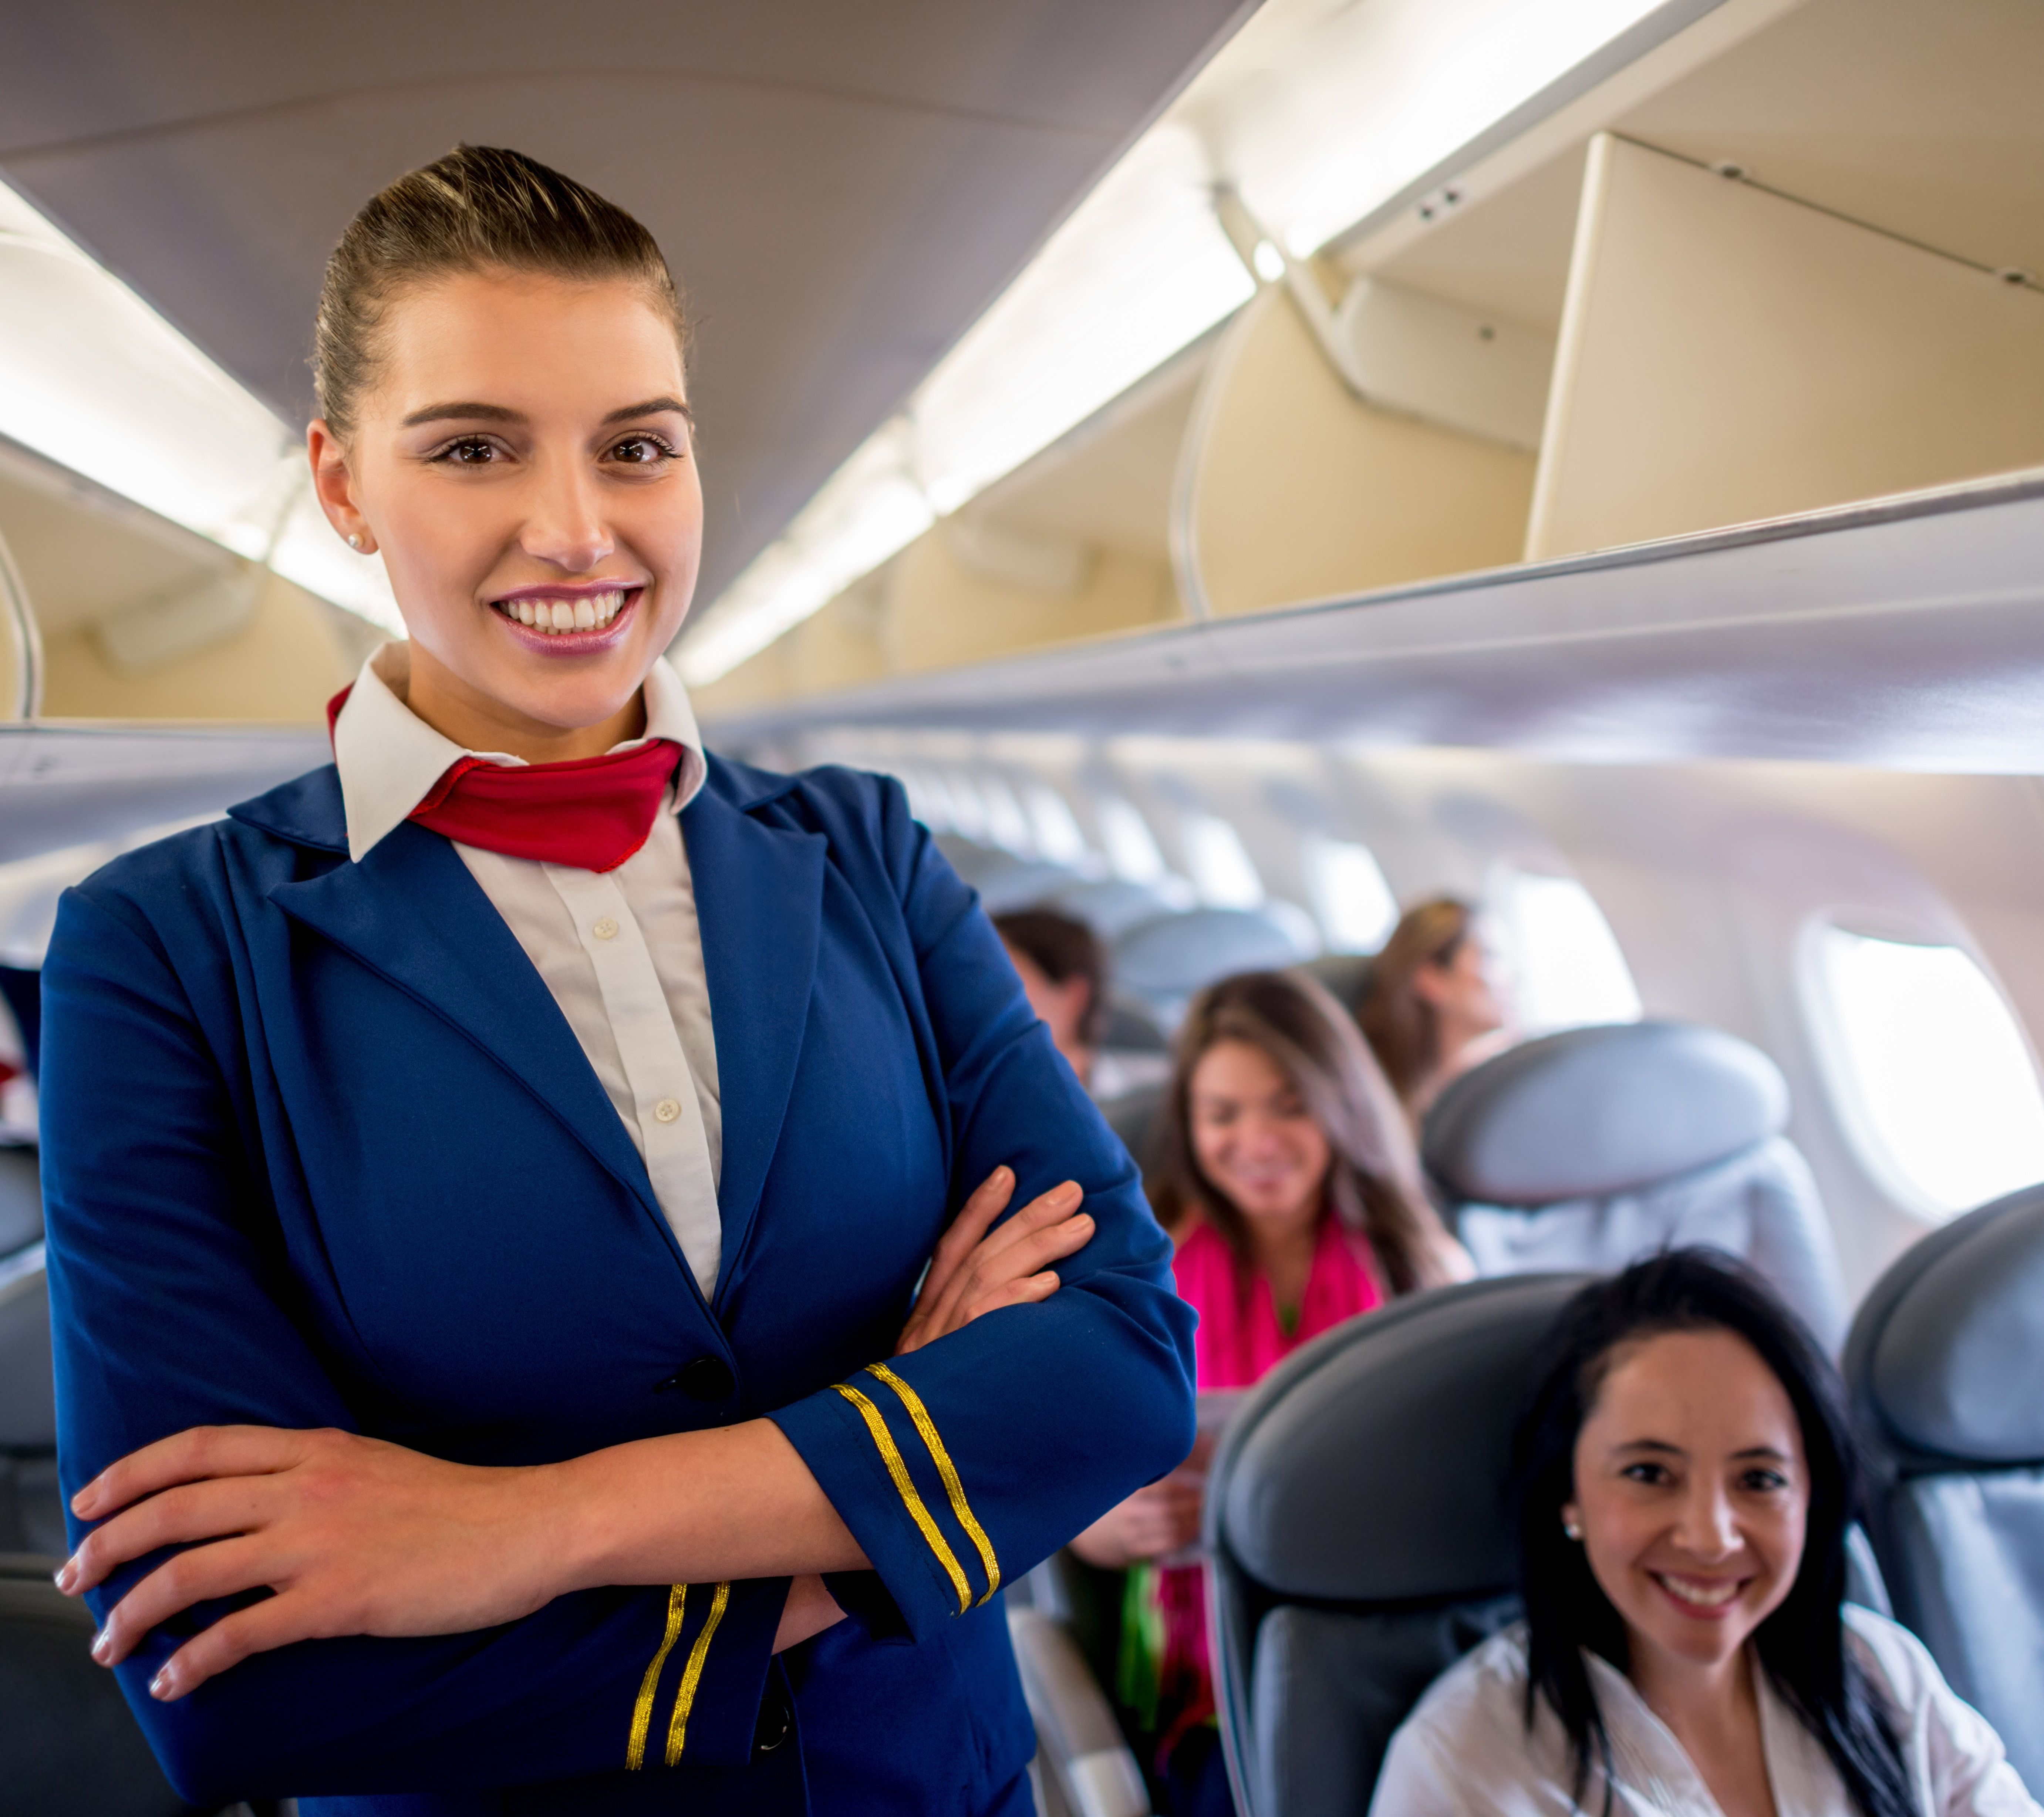 Flight attendant onboard with a group of passengers in the plane